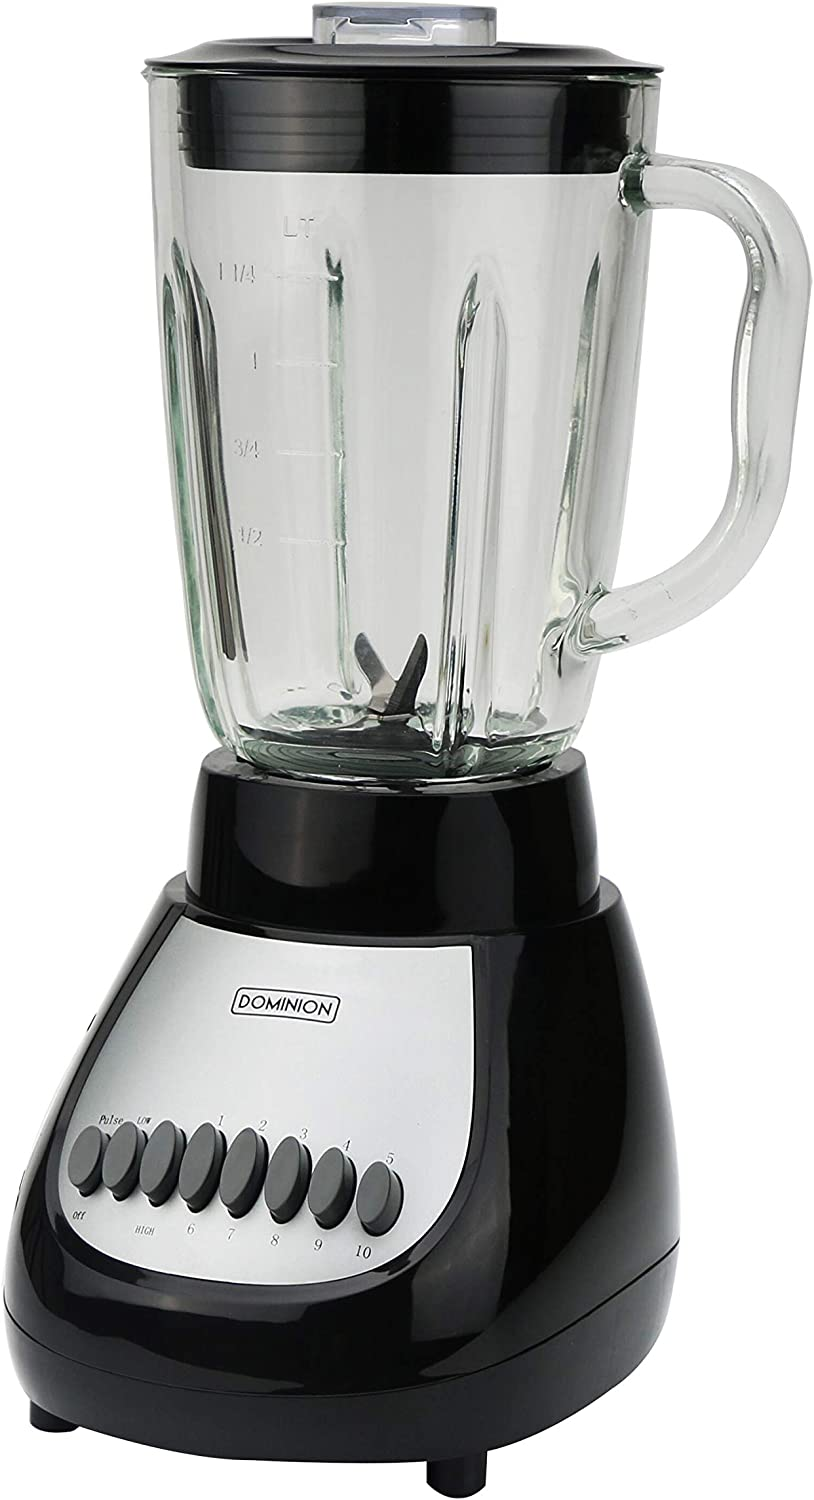 Dominion D4002BG Countertop Blender with 5-Cup Glass Jar (42oz), 10-Speed Settings with Pulse Function, Sharp Stainless Steel Blade, Black